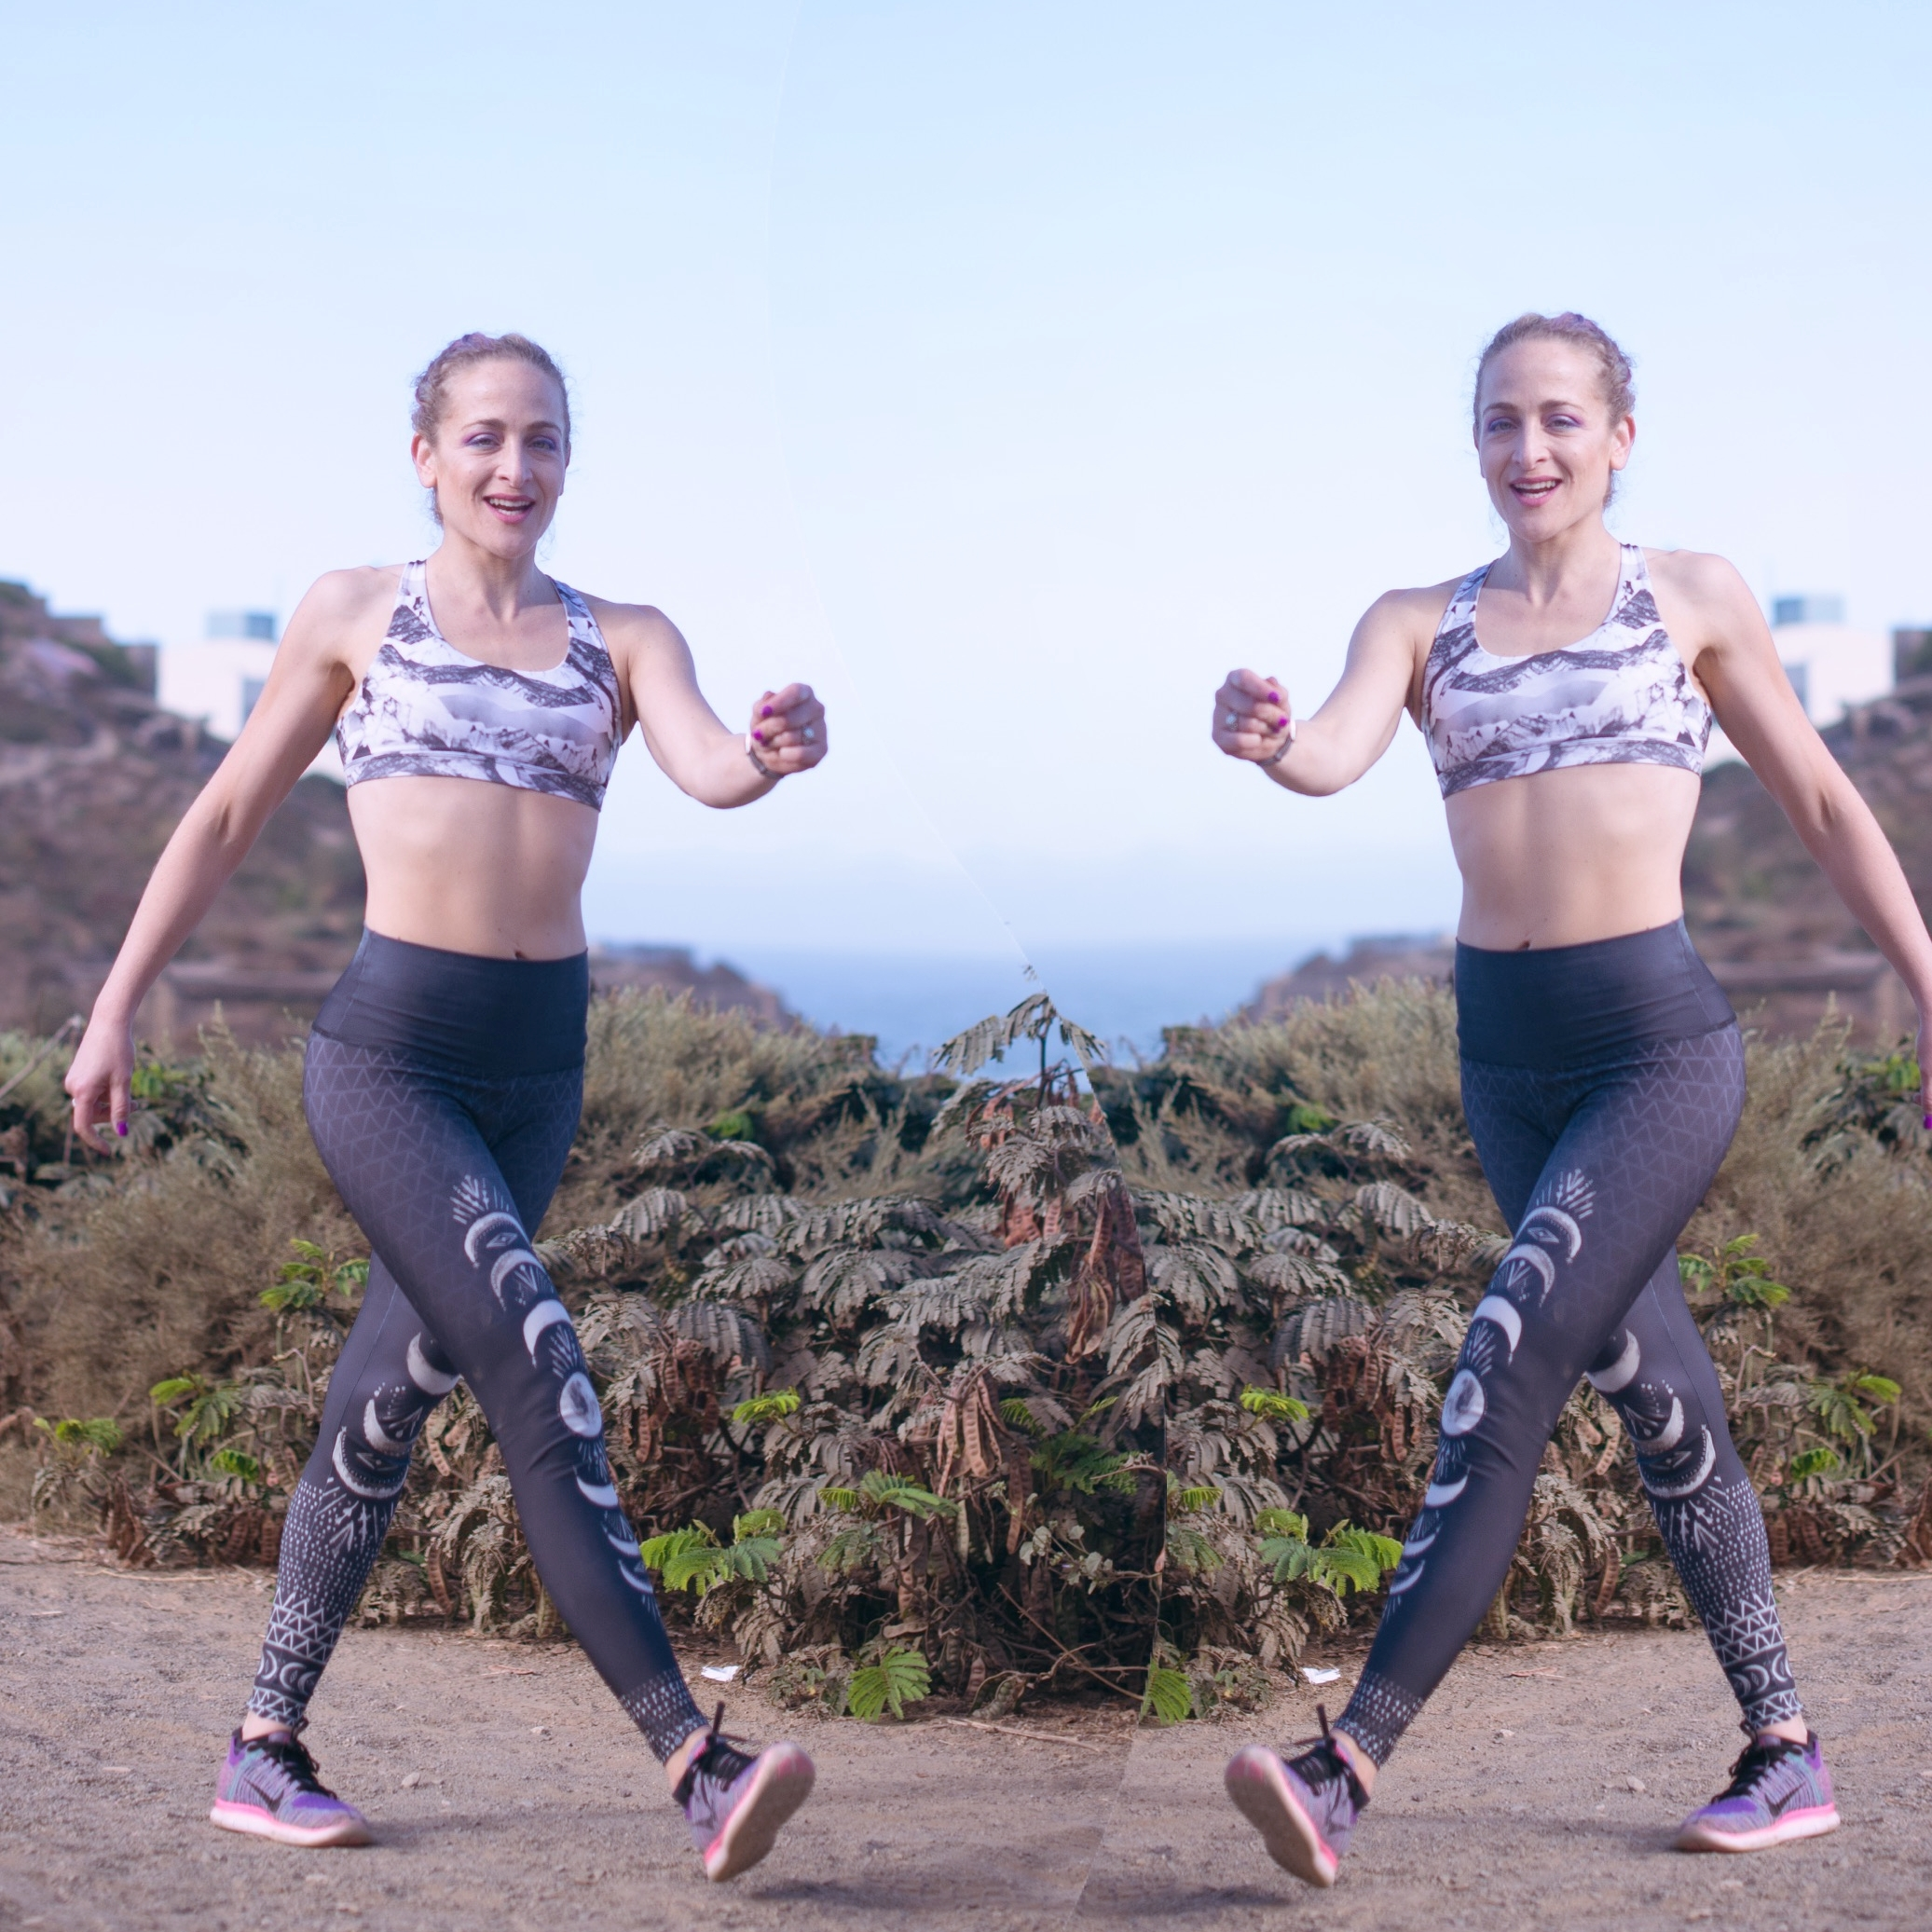 You arent seeing double- two workouts with me ahead!